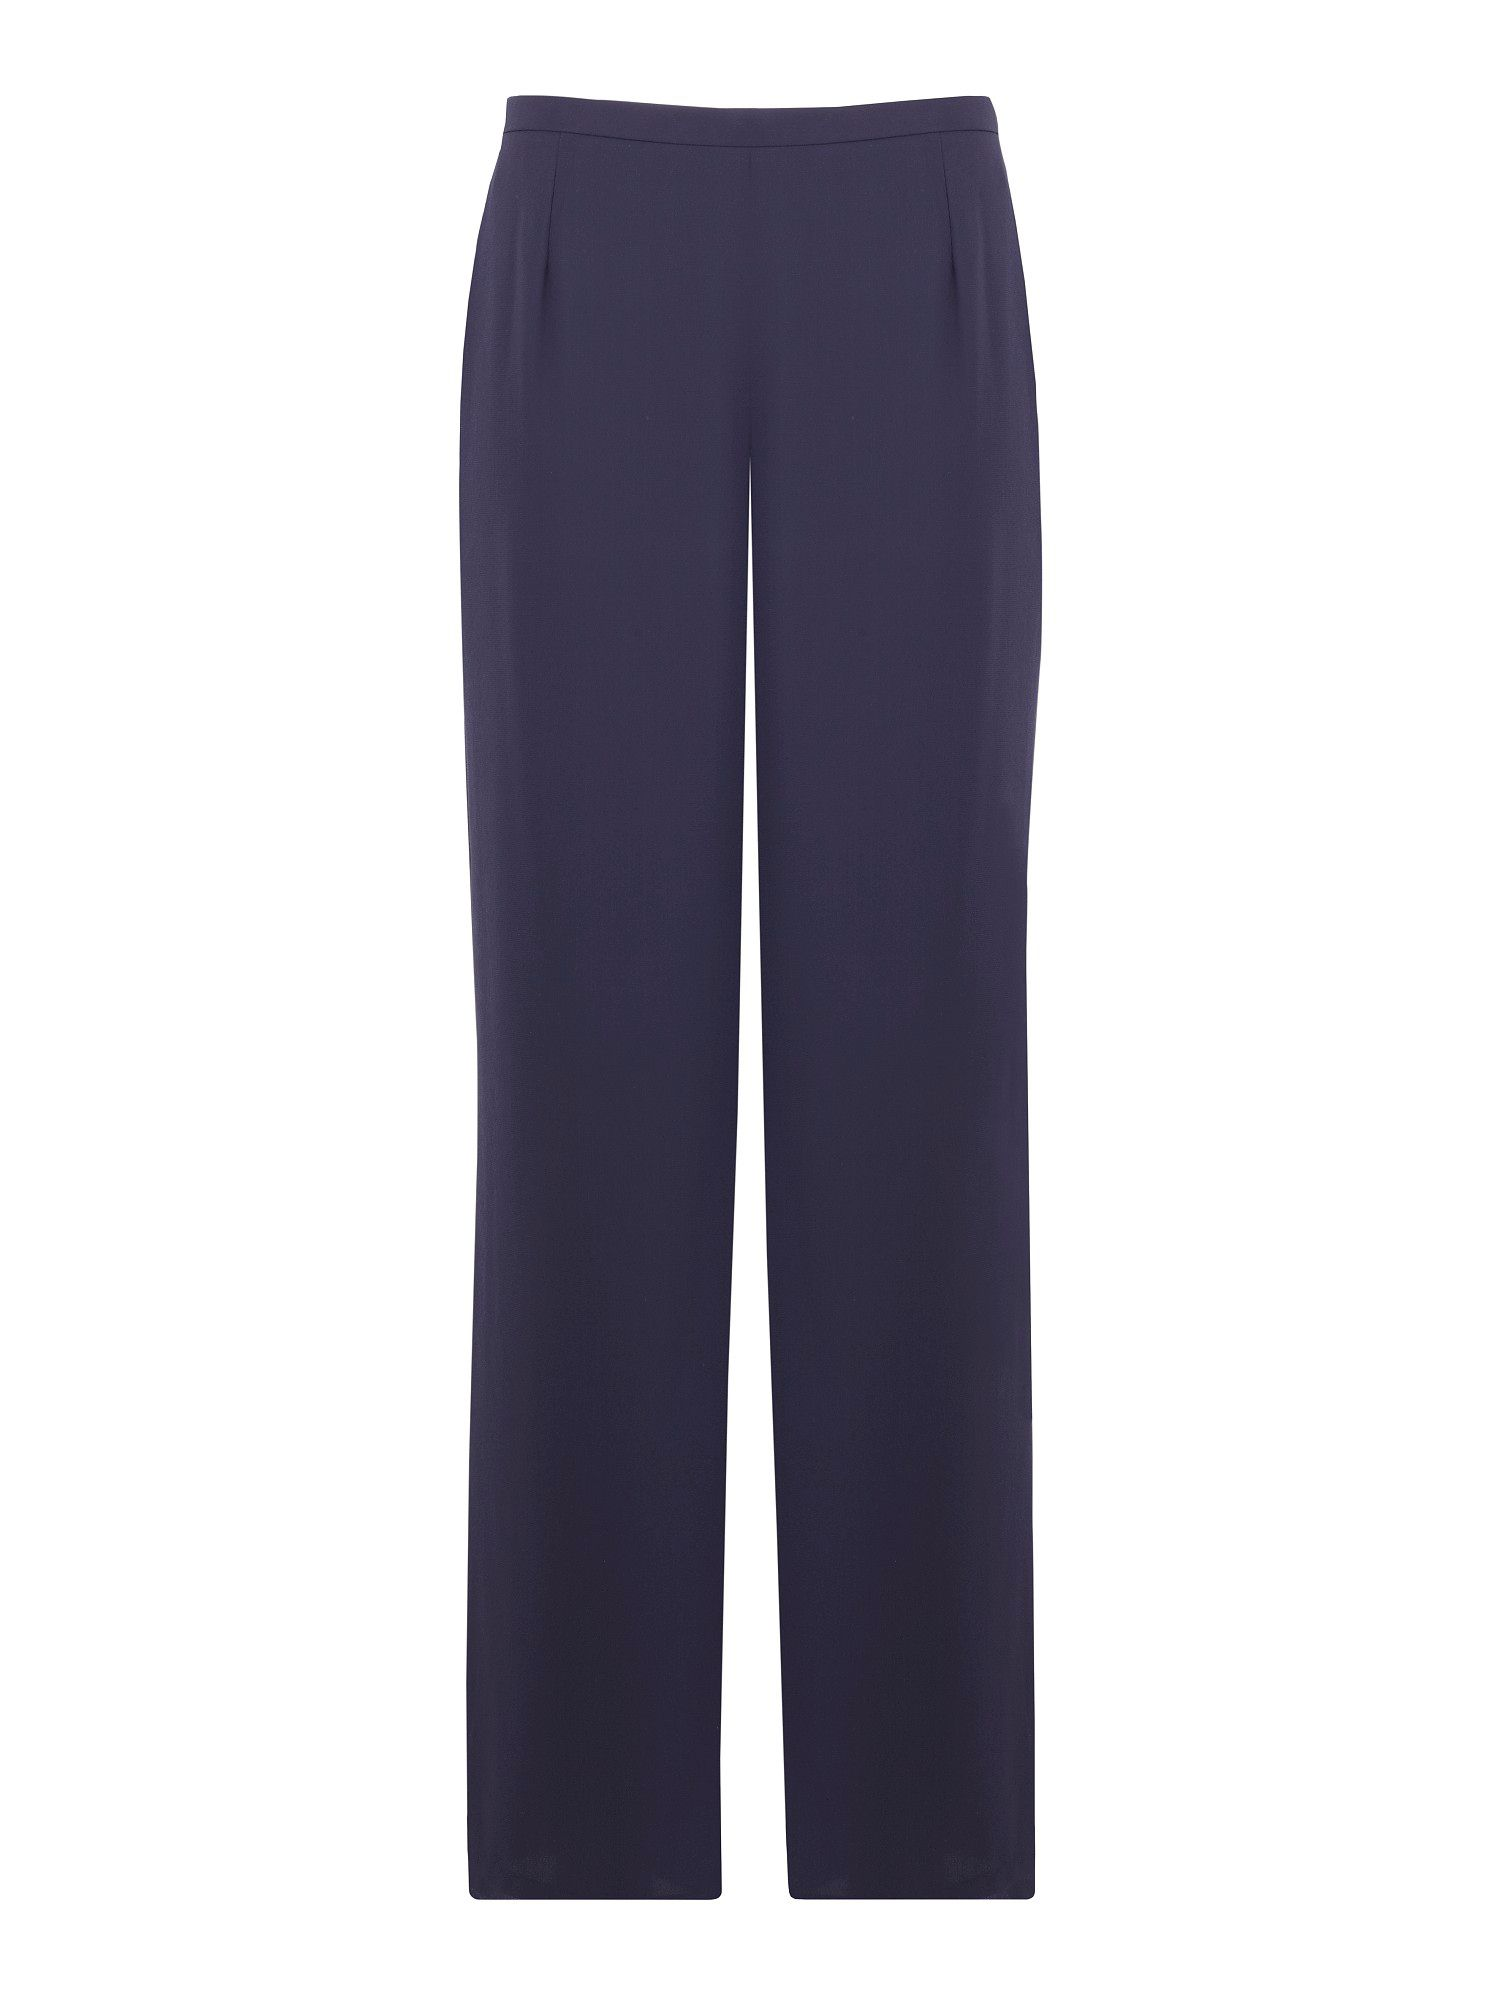 Navy georgette wide leg trouser